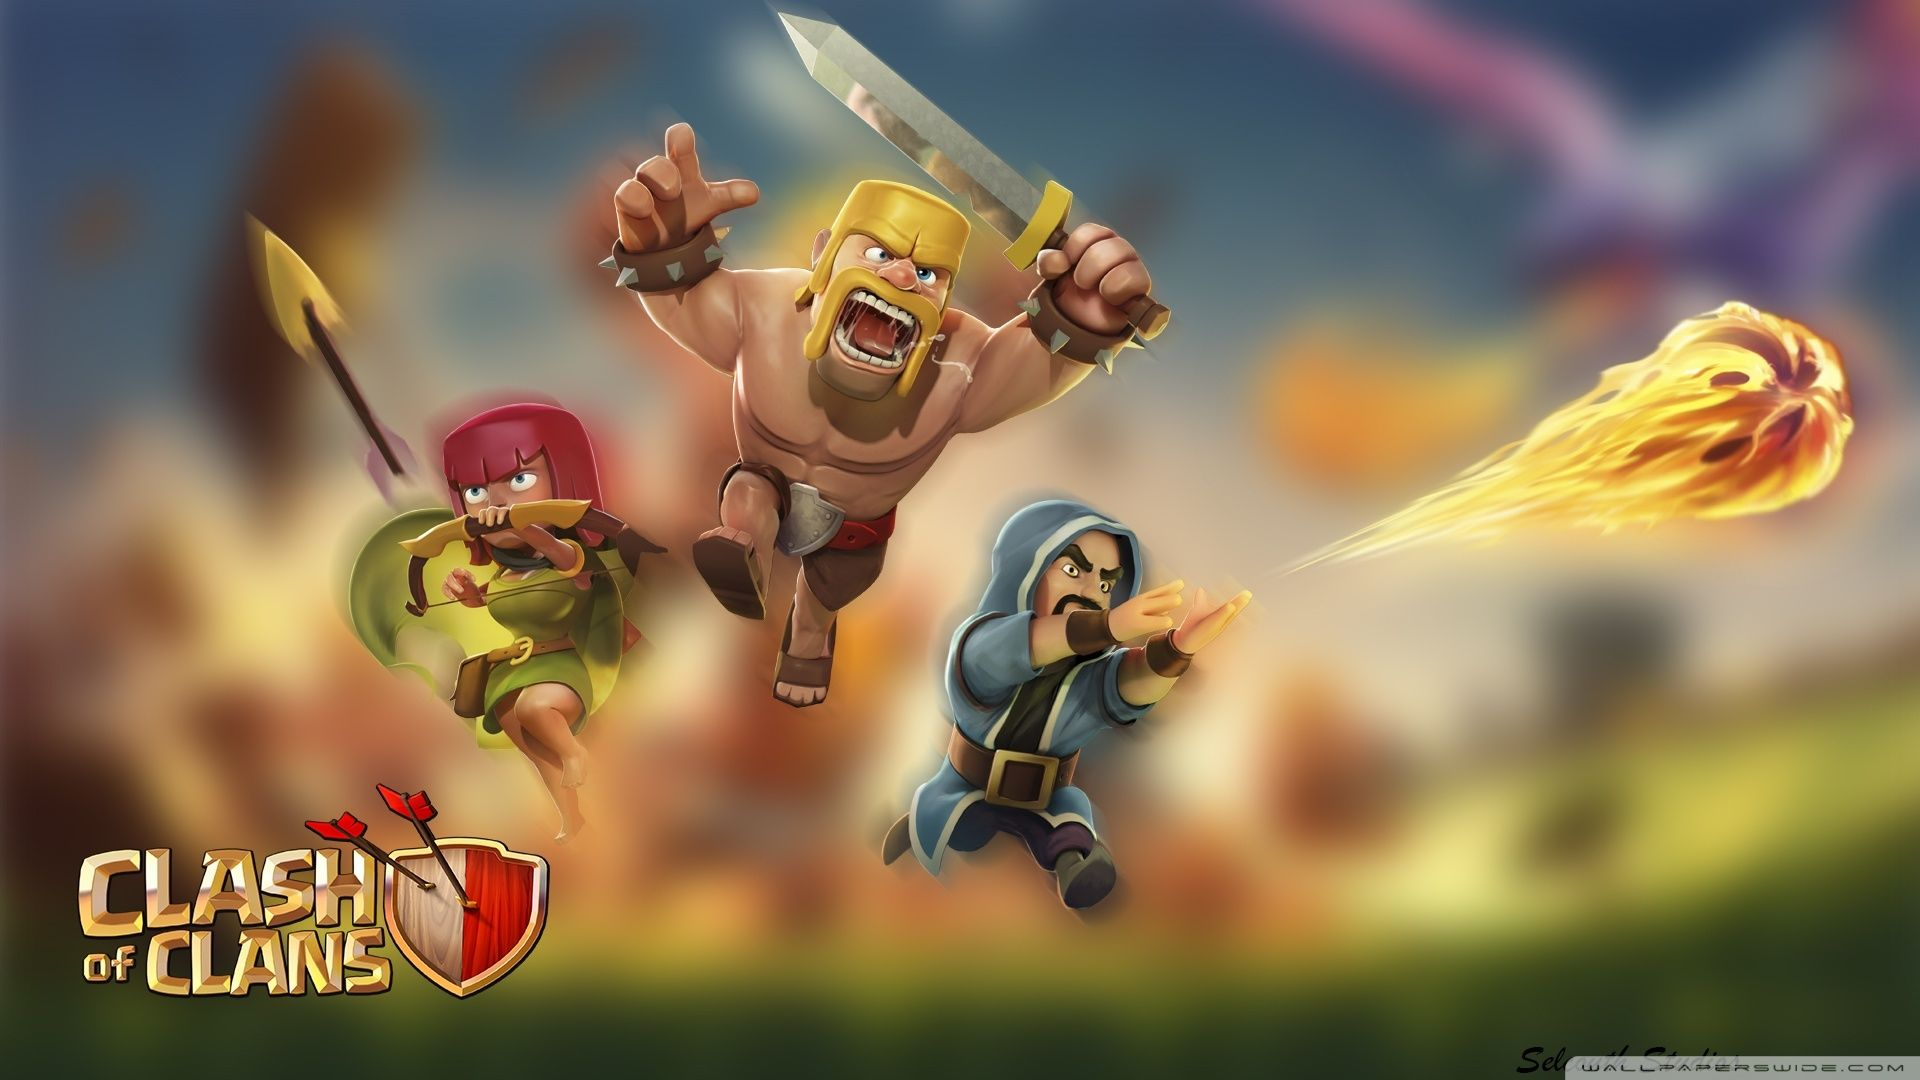 95 ] COC Wallpapers On WallpaperSafari